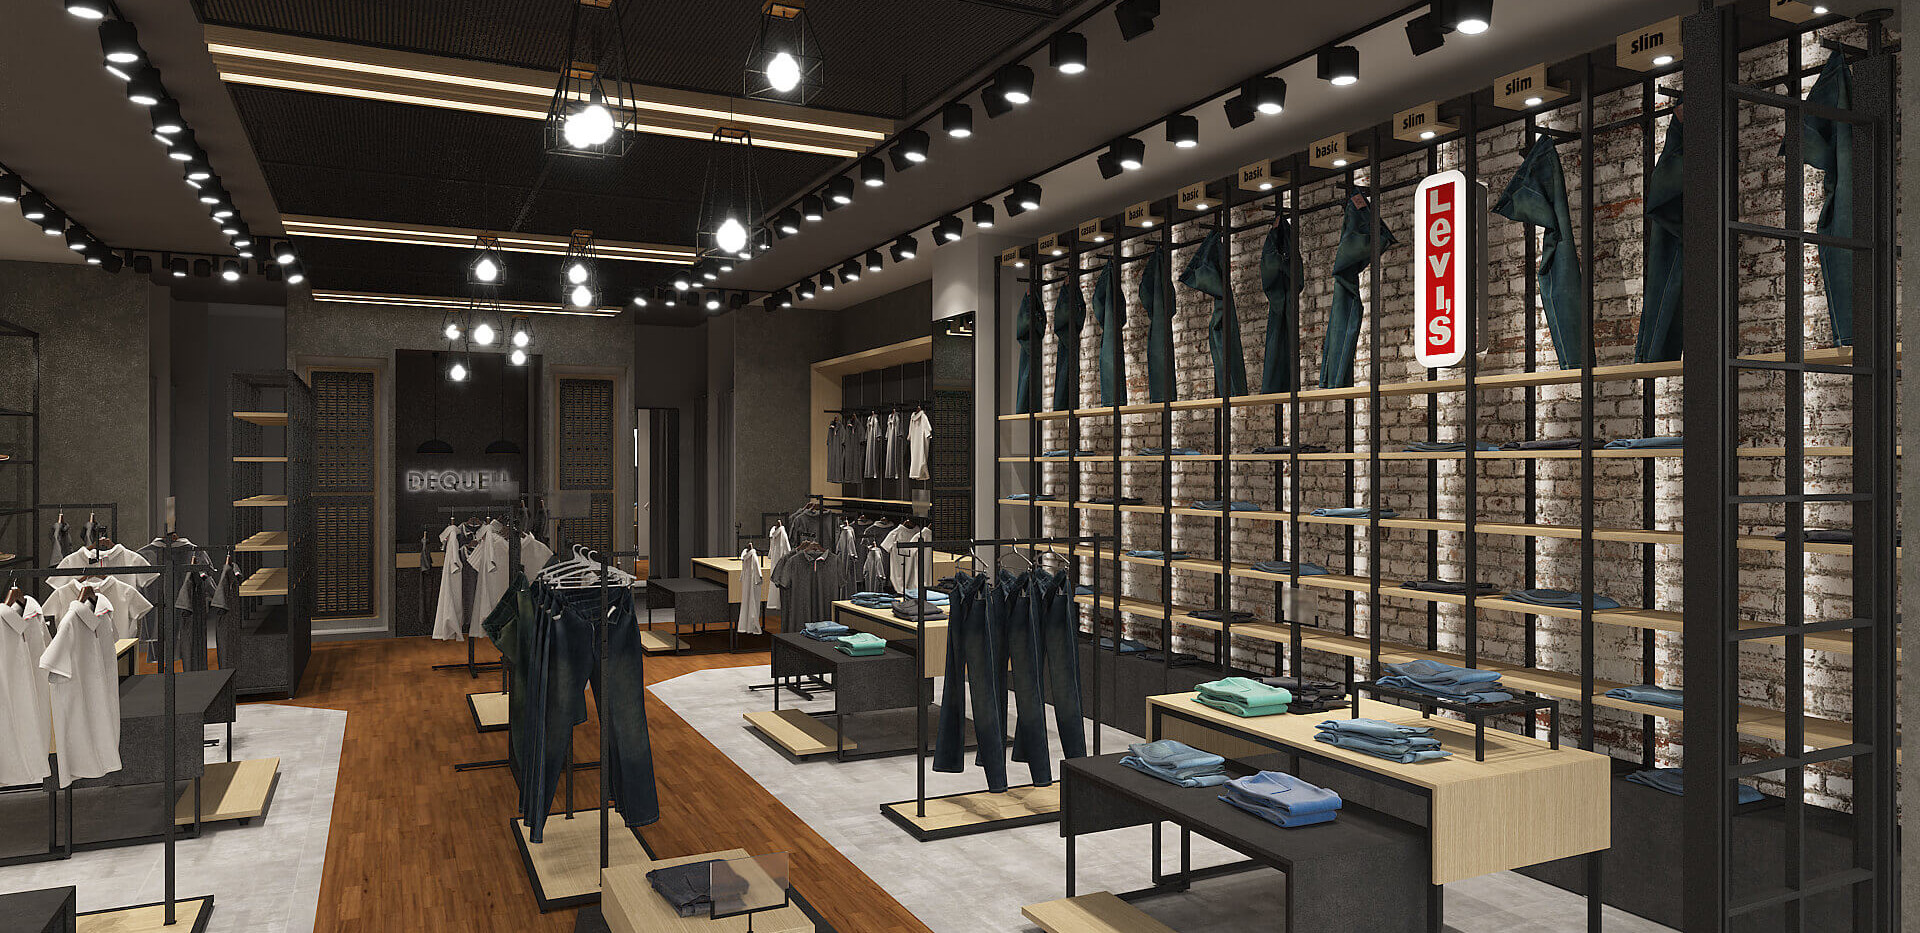 Dequell - Denim Store Shop Design-3.jpg